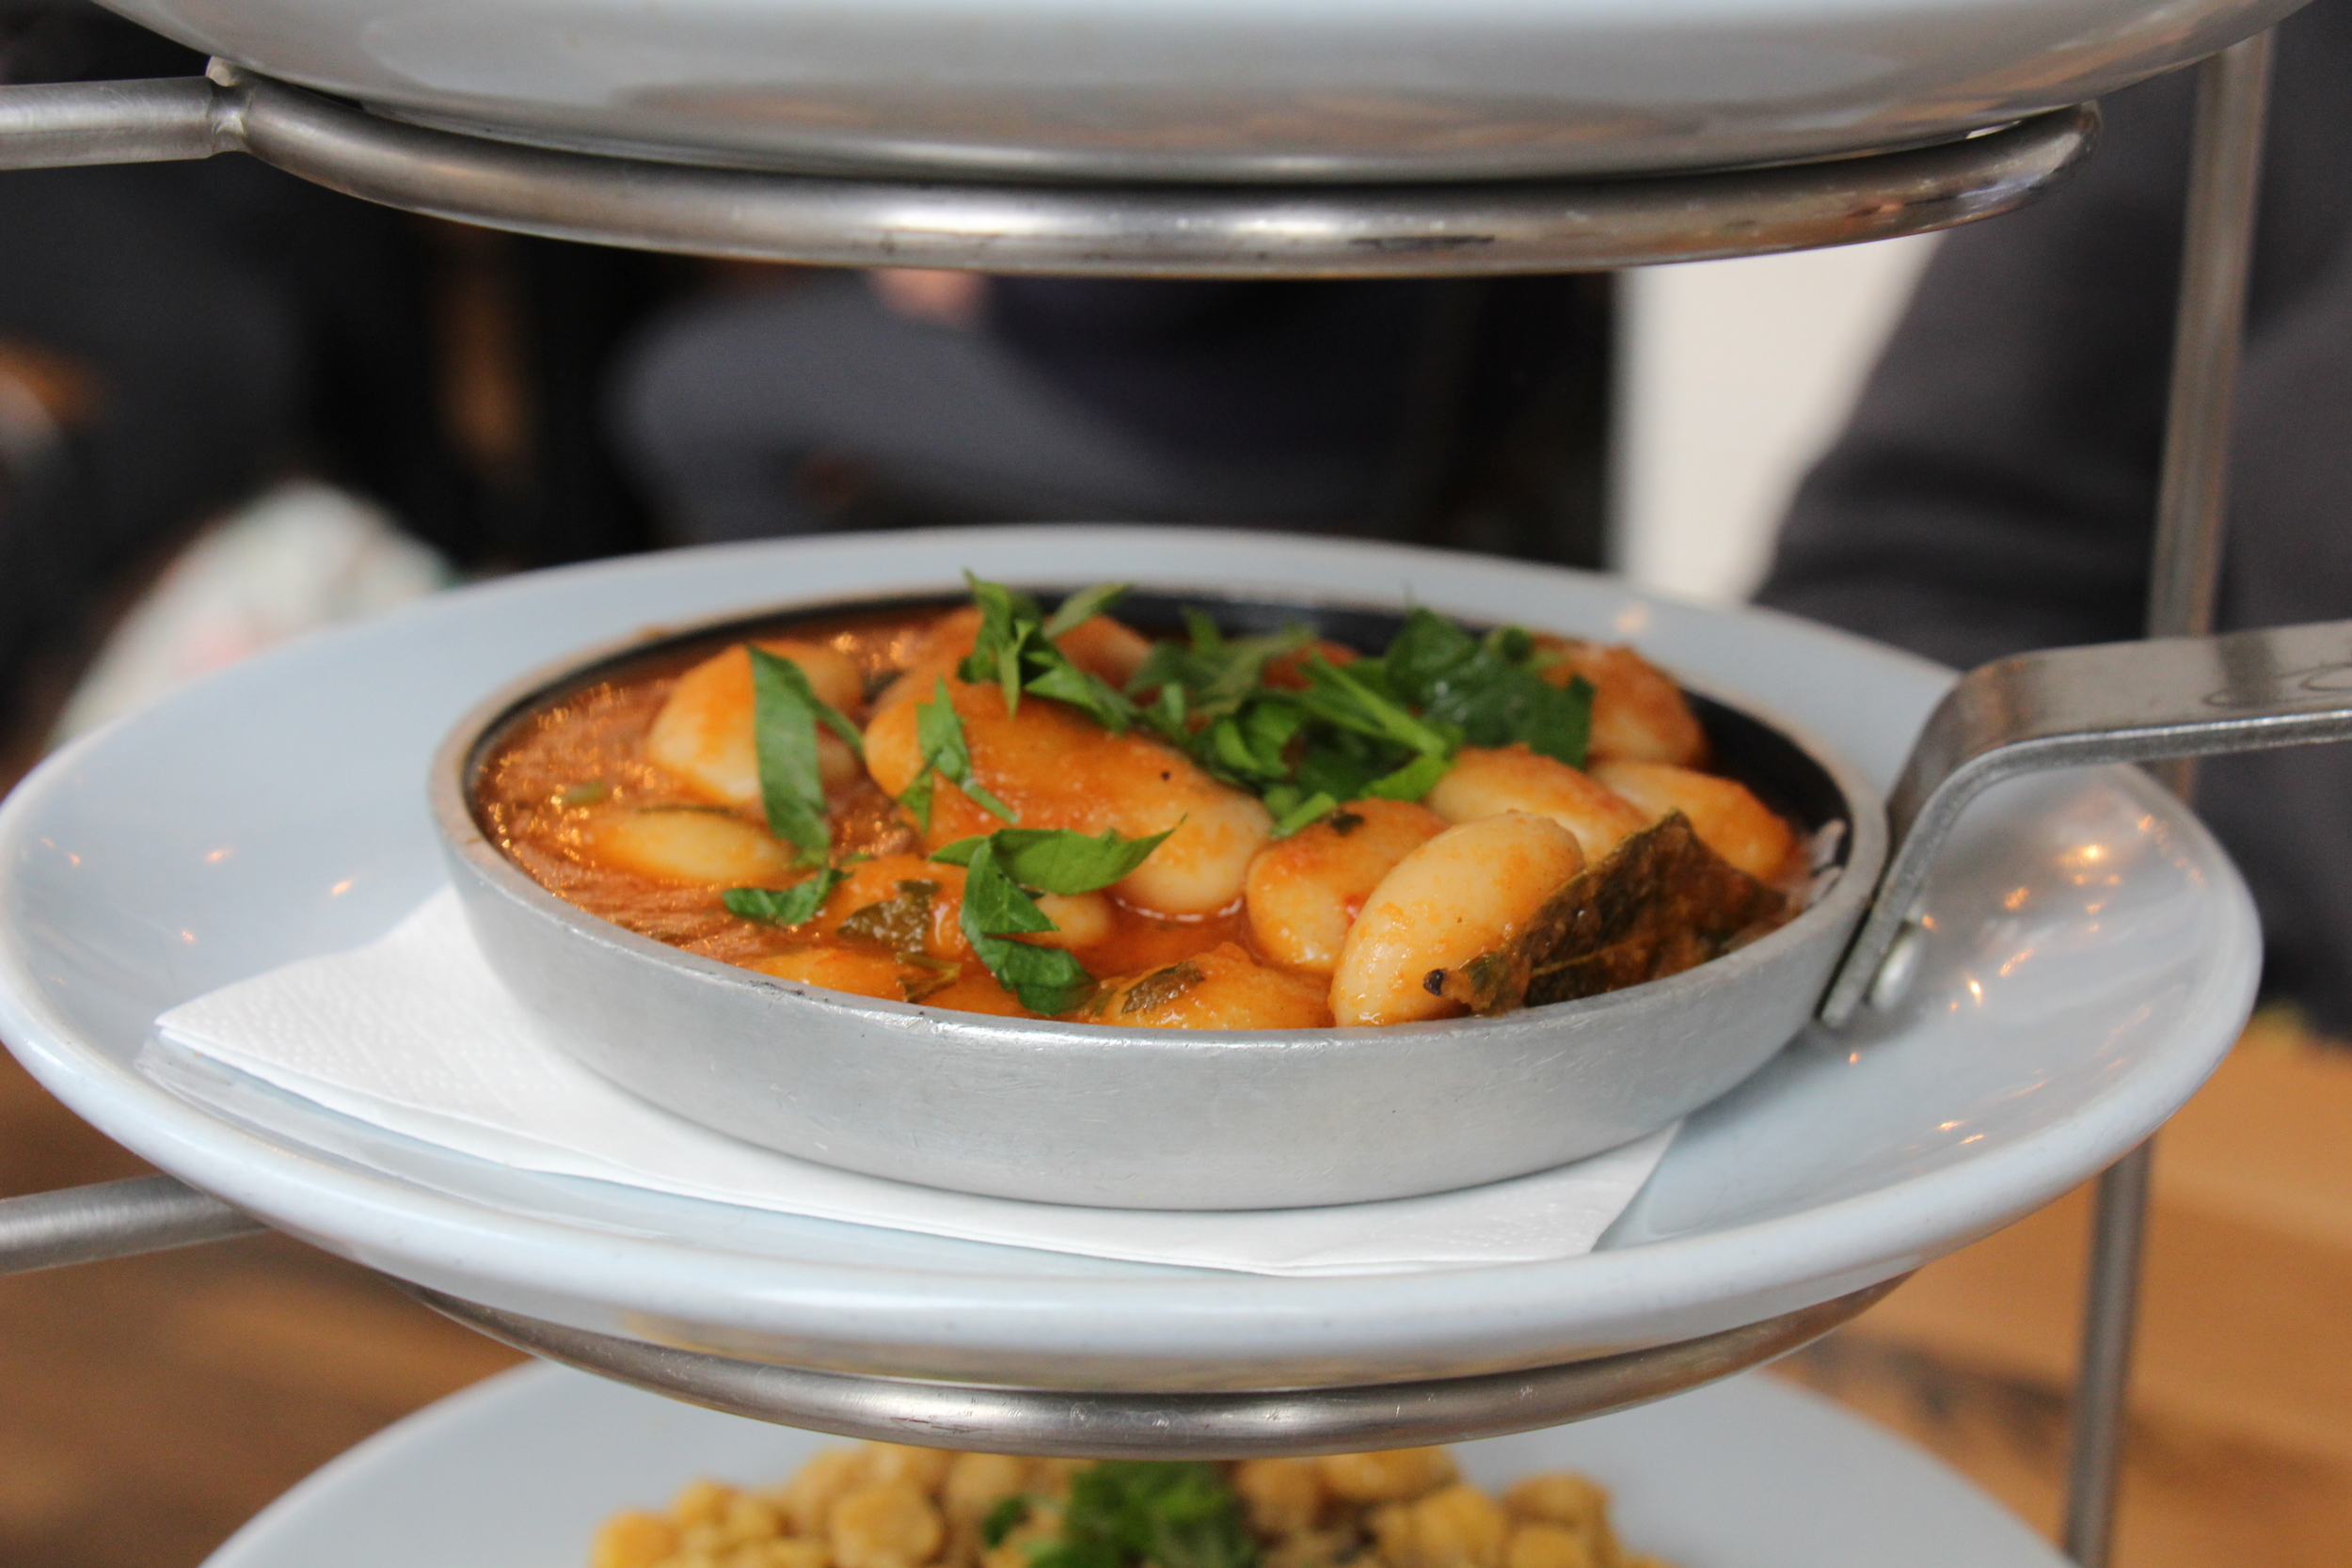 Gigandes Plaki - slow cooked giant beans in tomato sauce